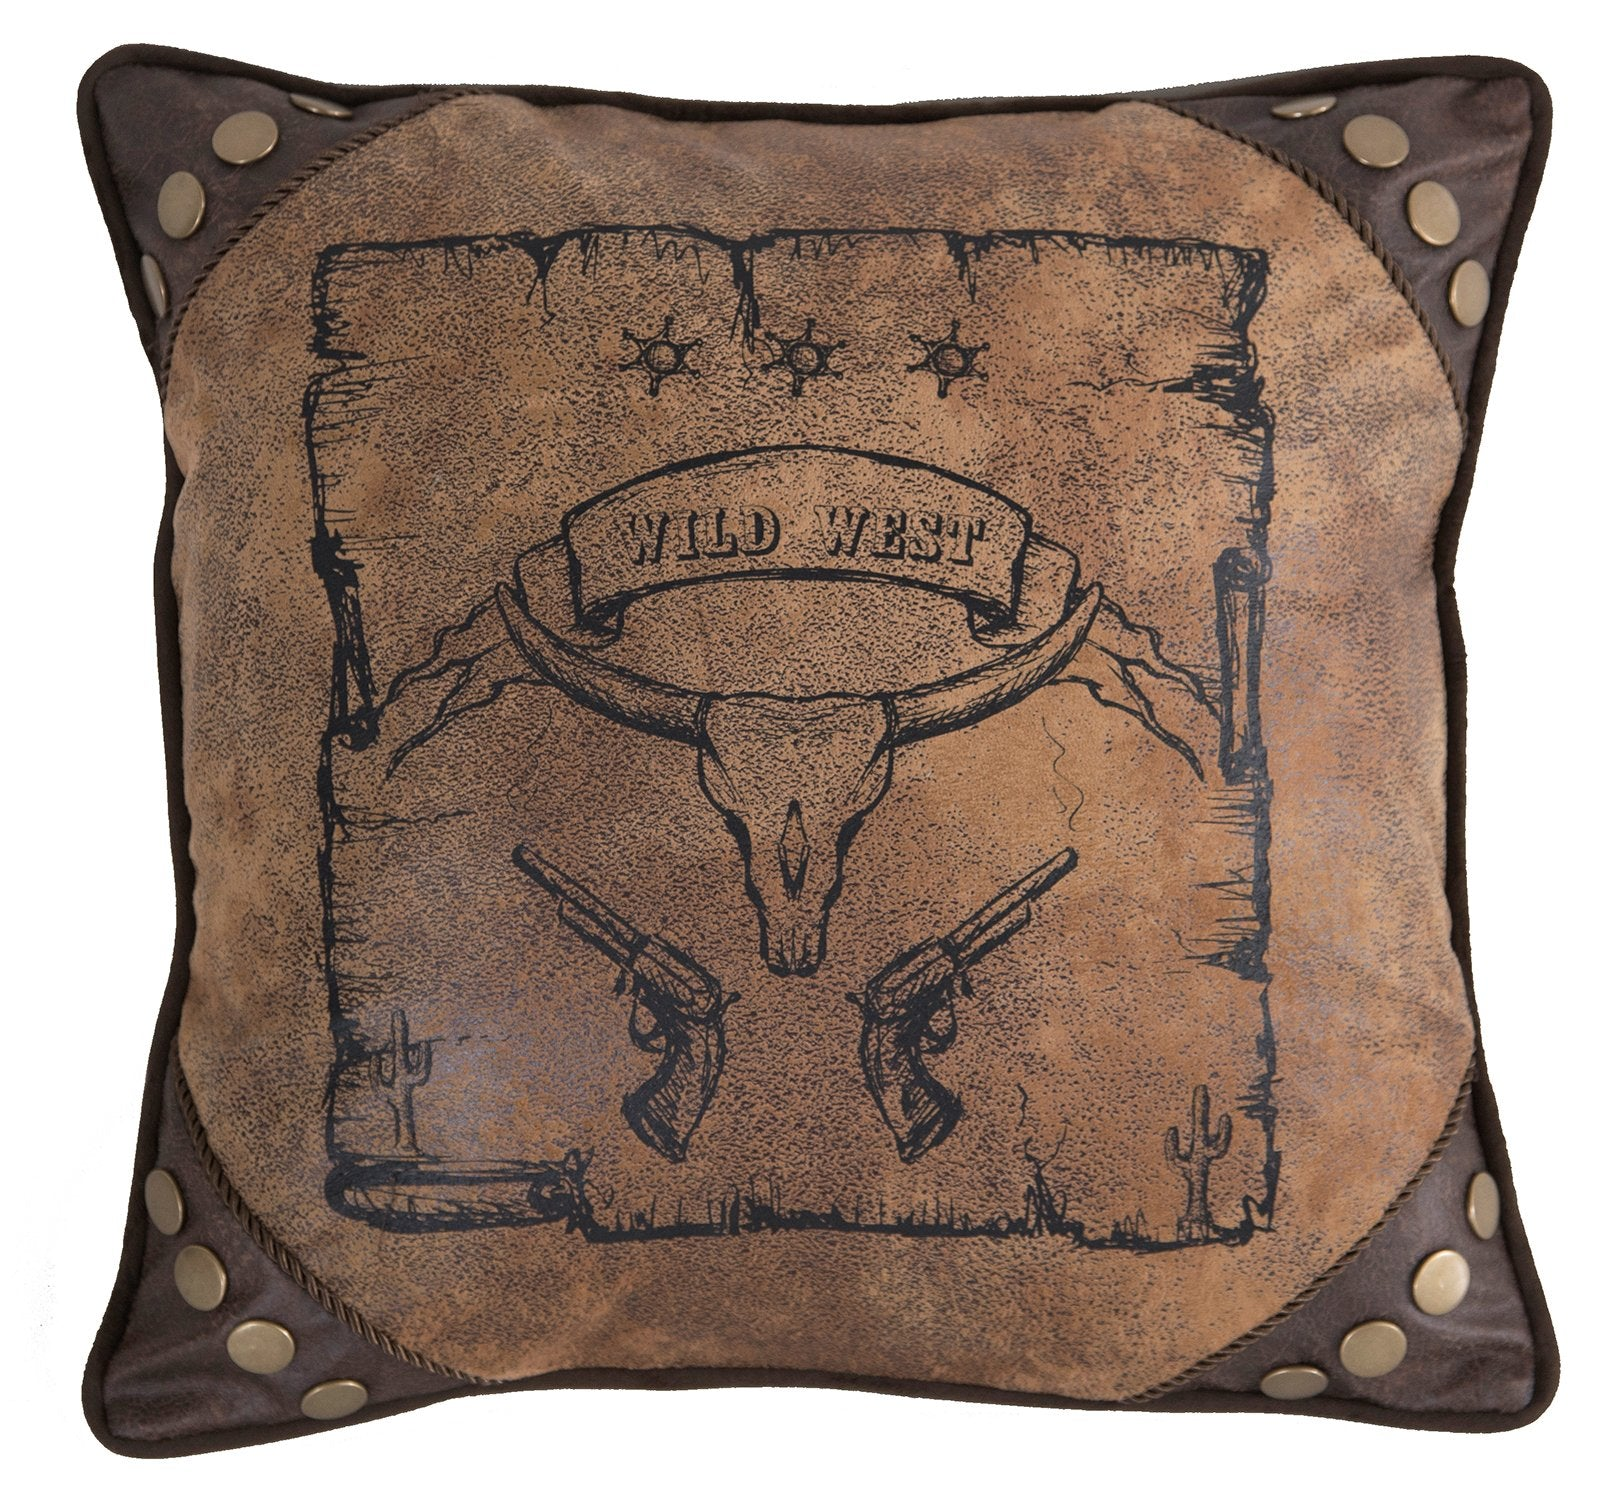 Wild West Pillow Carstens - unique linens online